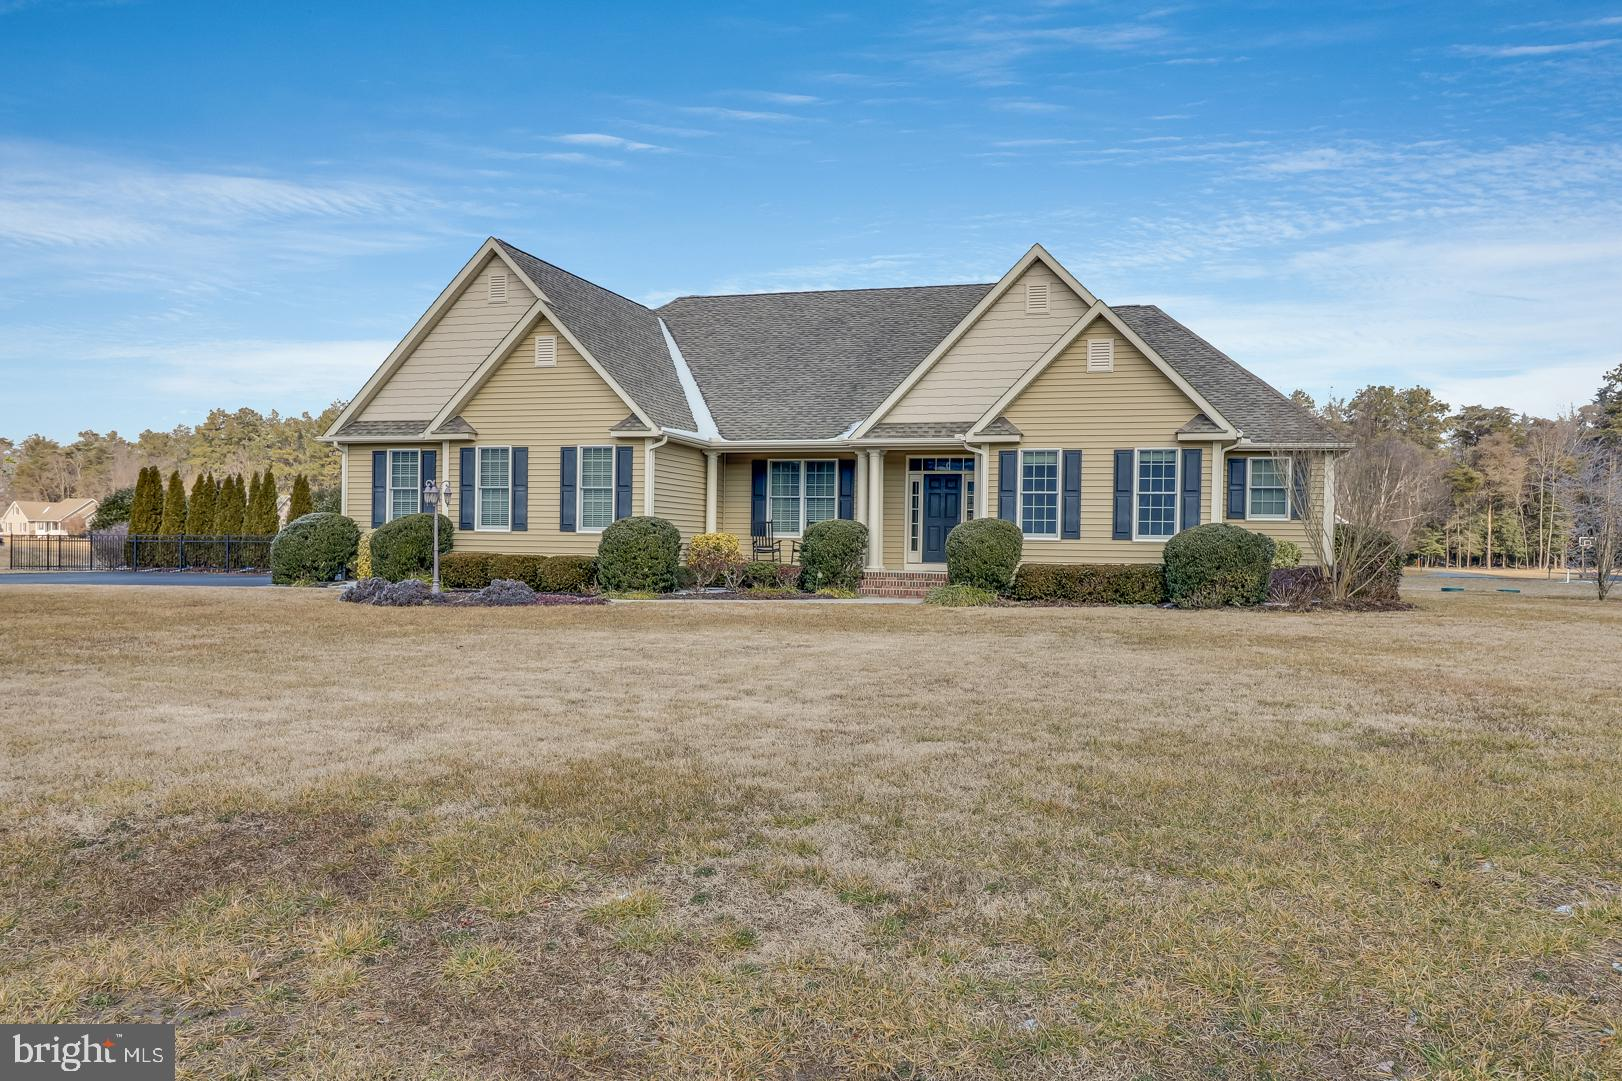 """Beautiful custom Ranch with in ground salt water pool! This home originally a """"builder's home"""" with many custom upgrades. Beautiful hardwoods, coffered family room ceiling. Master suite. 4 total bedrooms with walk in closets in all. The rear patio is completely covered. White kitchen cabinets in like new condition. Huge mudroom/laundry off of the garage. A rare opportunity!"""